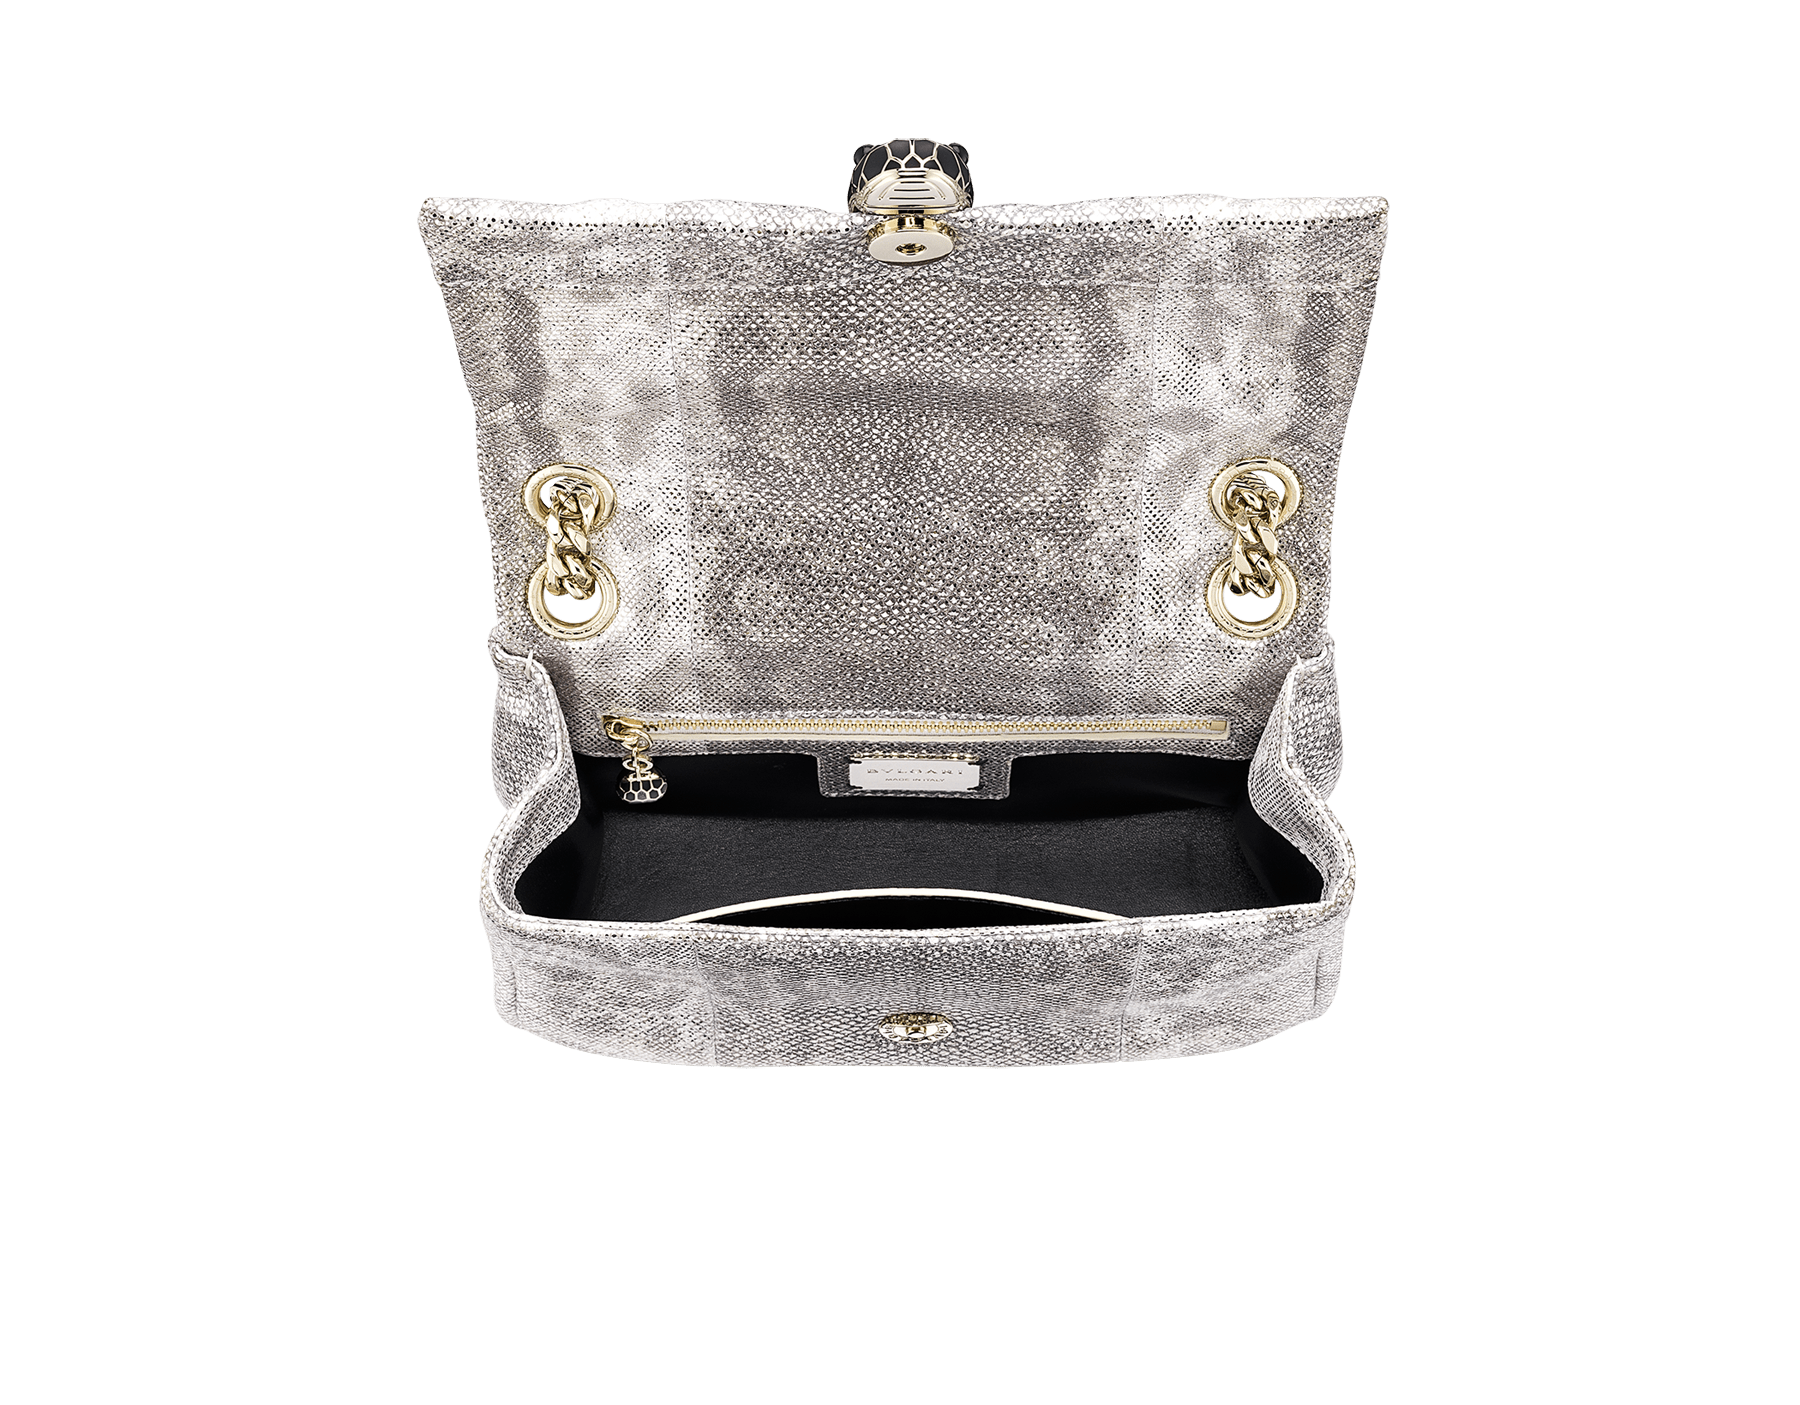 Serpenti Cabochon shoulder bag in soft matelassé charcoal diamond metallic karung skin with graphic motif. Snakehead closure in light gold plated brass decorated with matte black and glitter charcoal diamond enamel, and black onyx eyes. 981-MK image 4